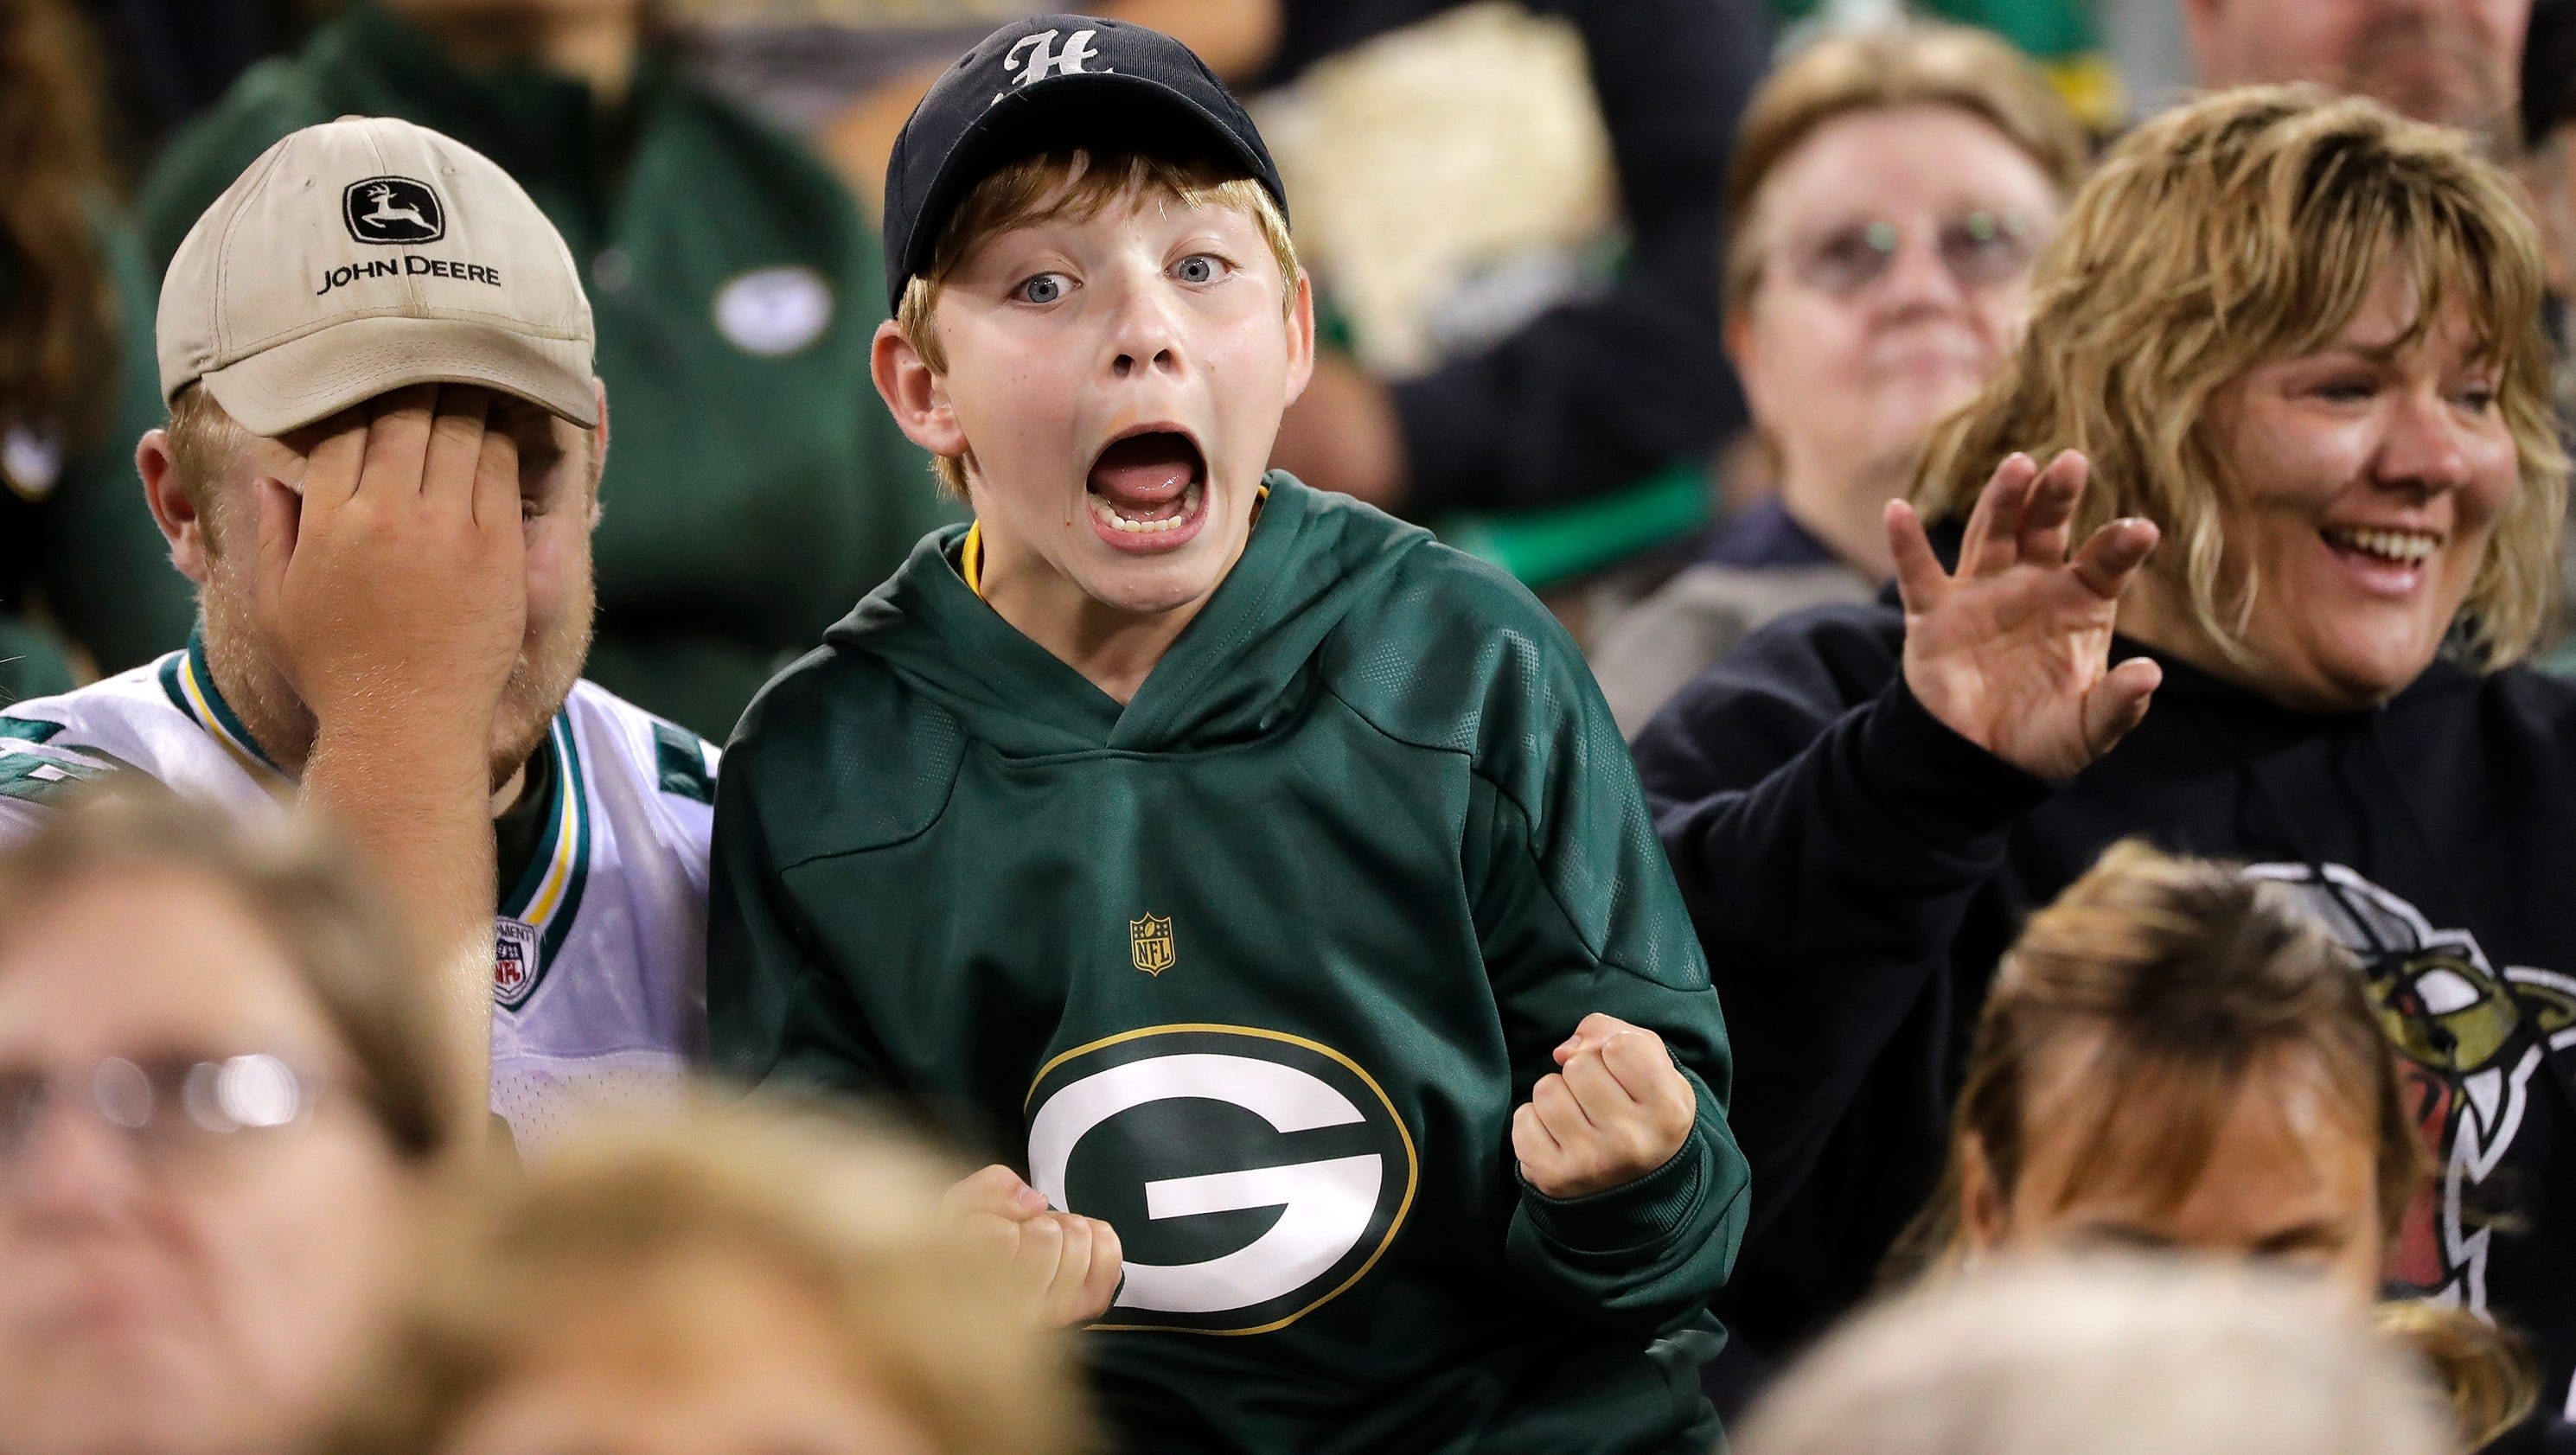 636375731955572202-gpg-packersfamilynight-080517-abw1439